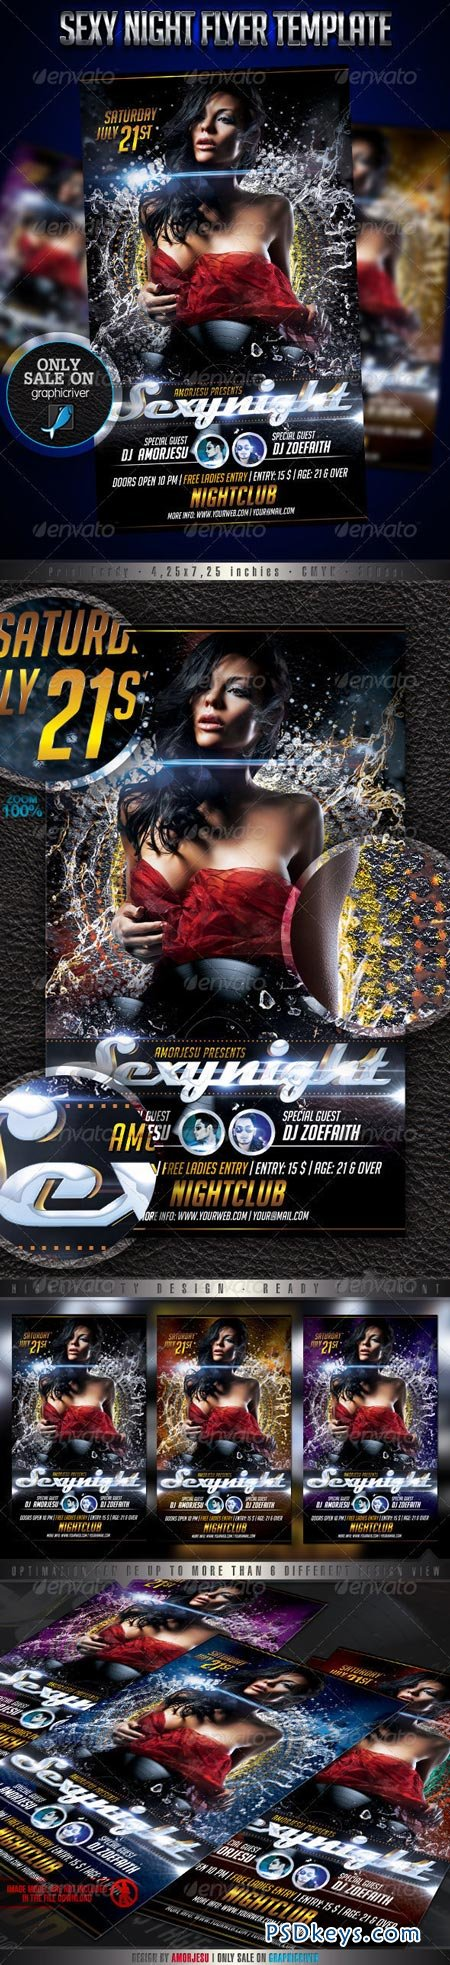 Sexy Night Flyer Template 2675869